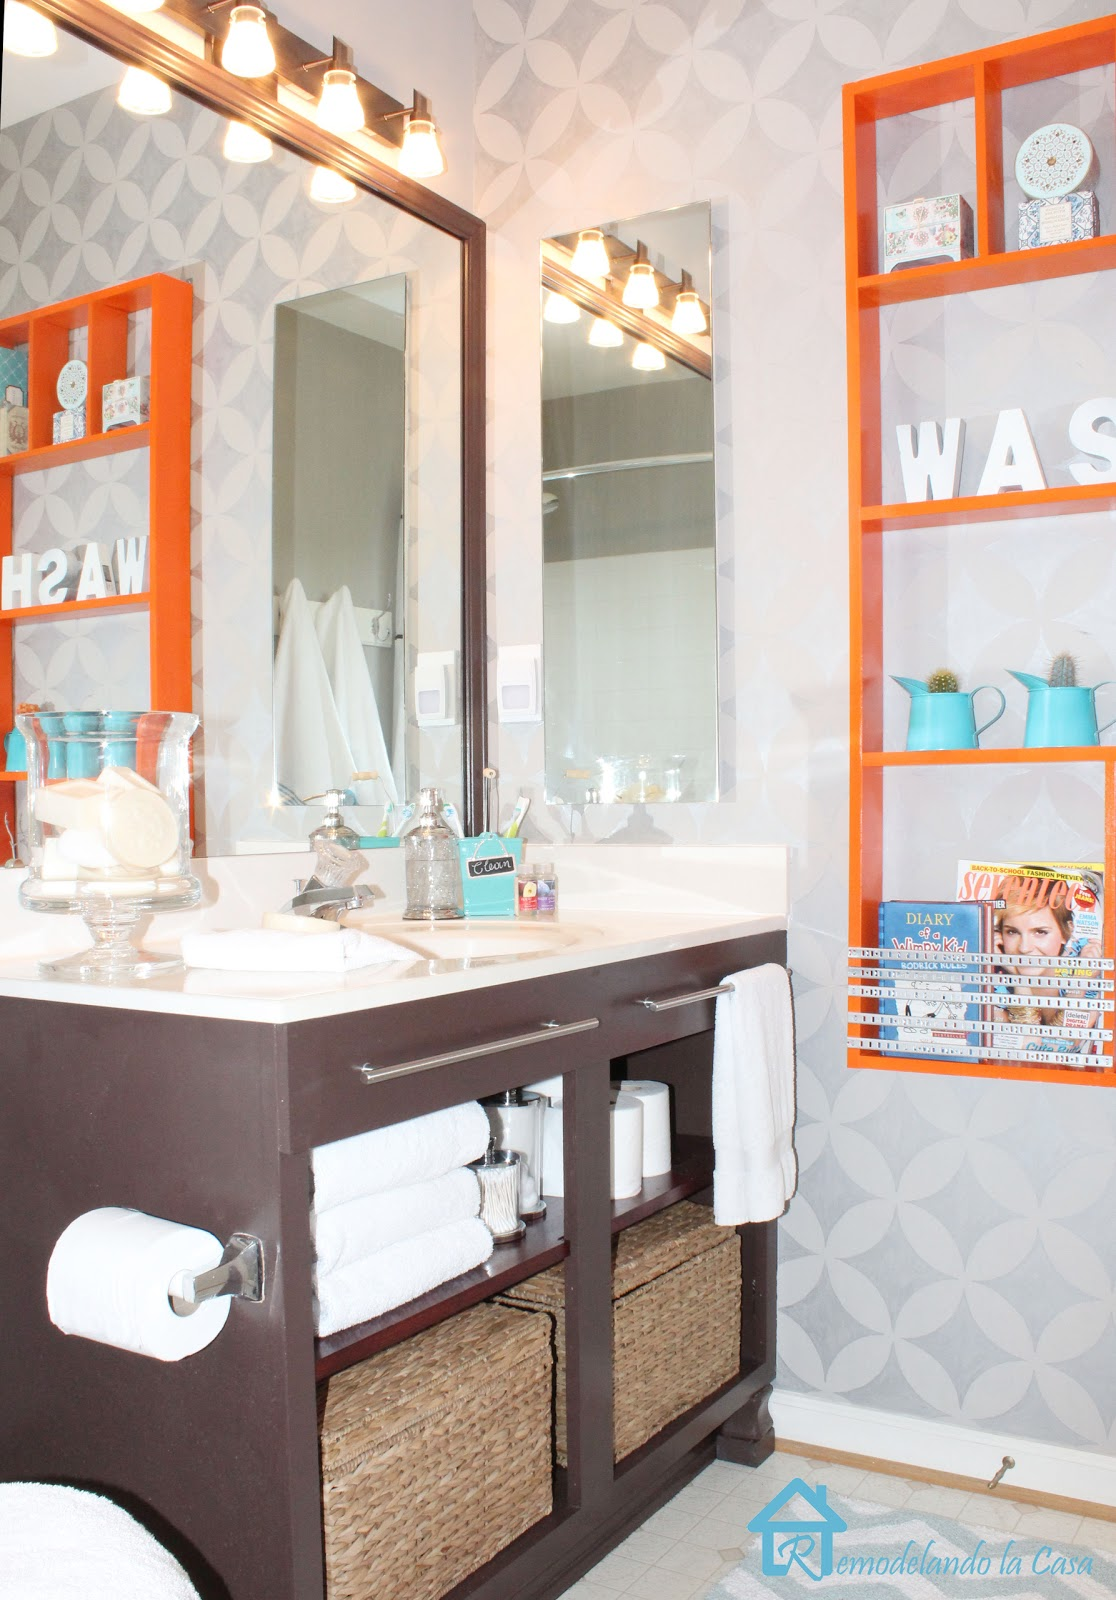 Remodelando la Casa: Bathroom Makeover